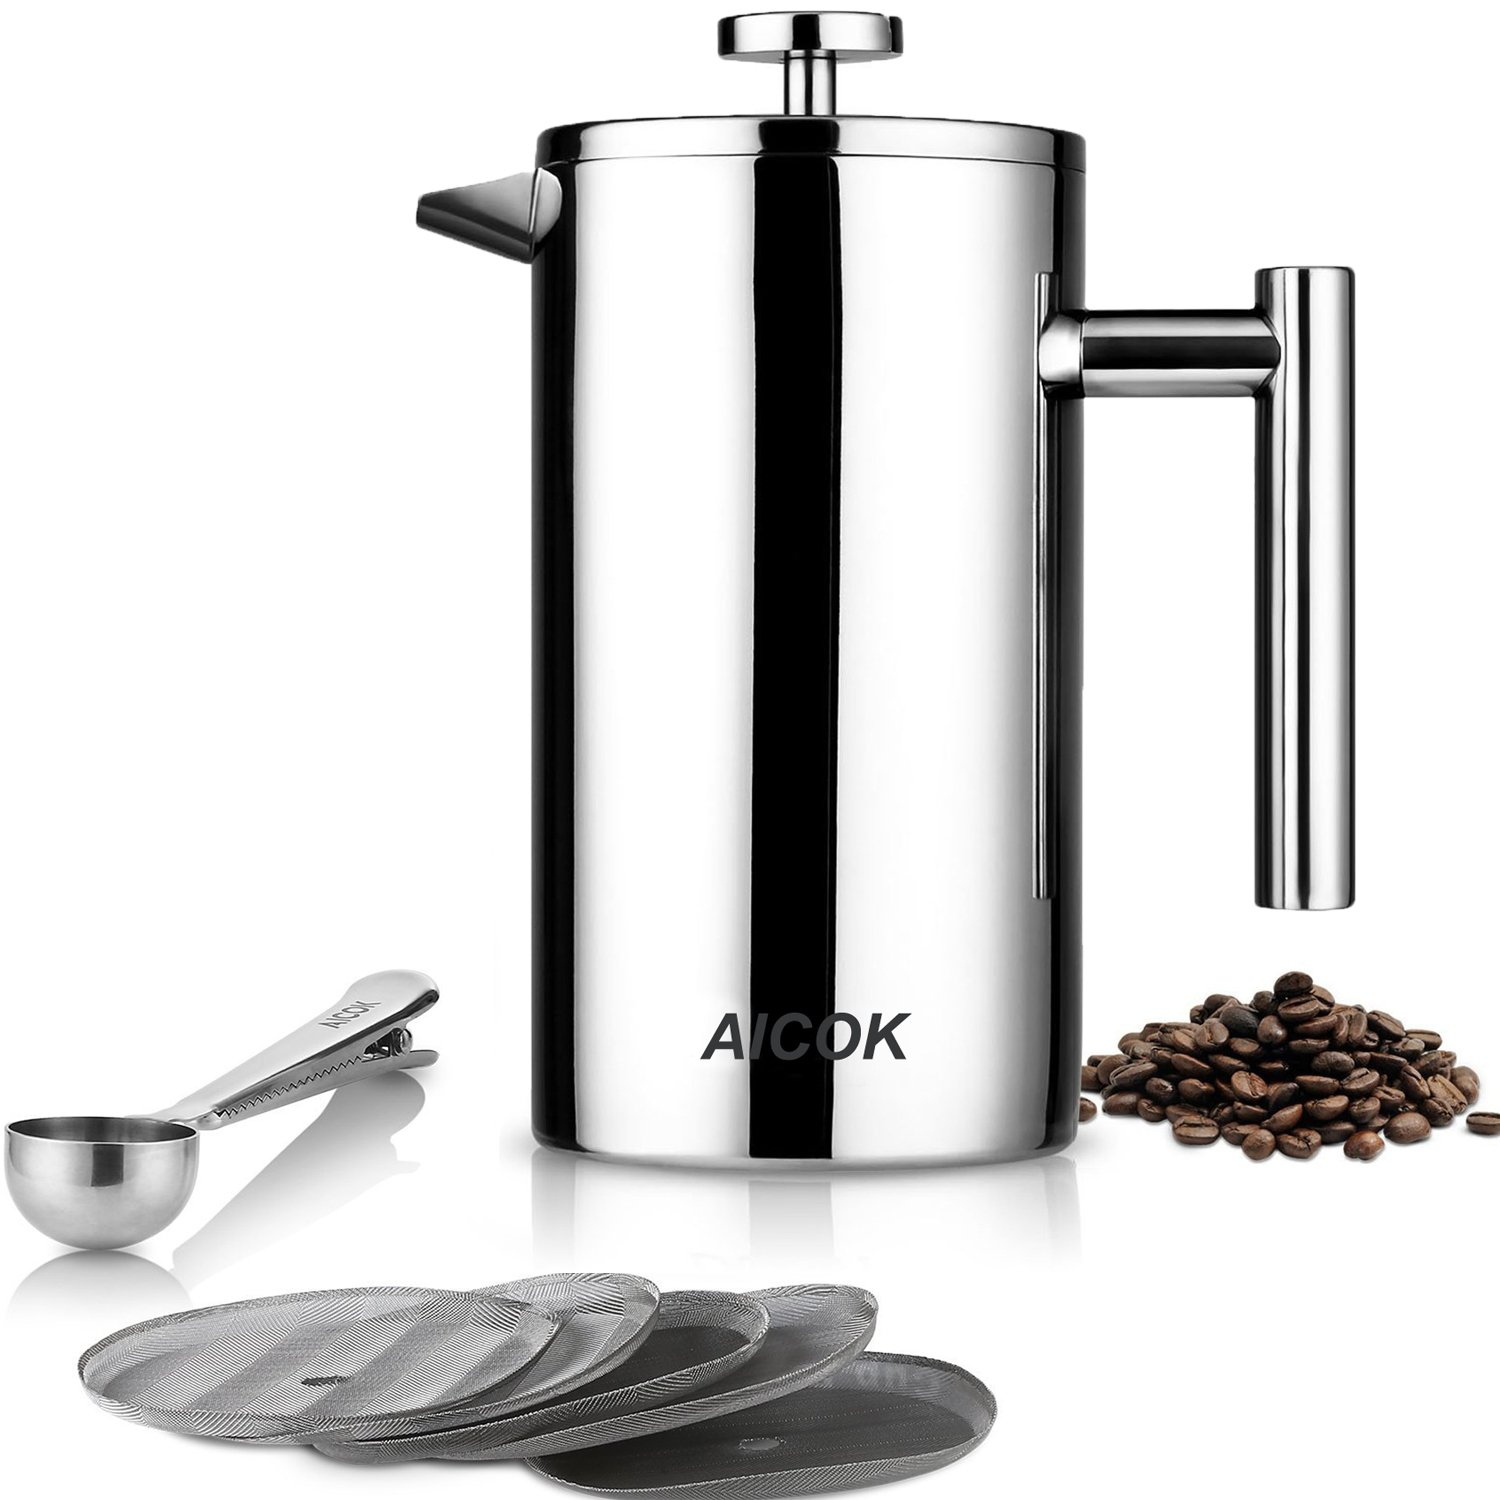 aicok kaffeebereiter edelstahl french press system. Black Bedroom Furniture Sets. Home Design Ideas